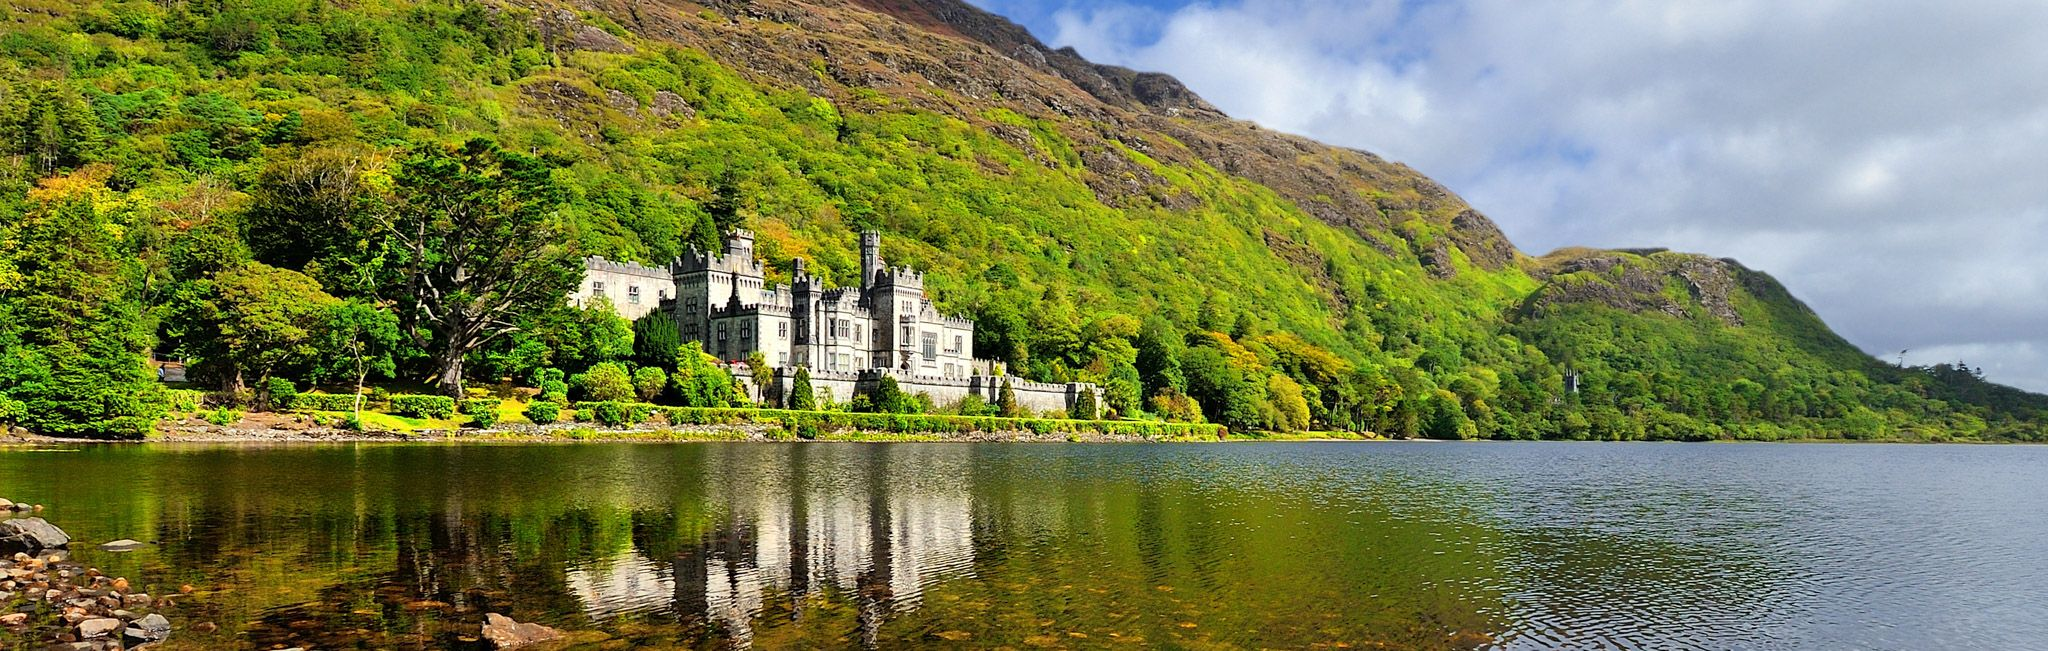 Best Ireland Tours Vacations Amp Travel Packages 2018 2019